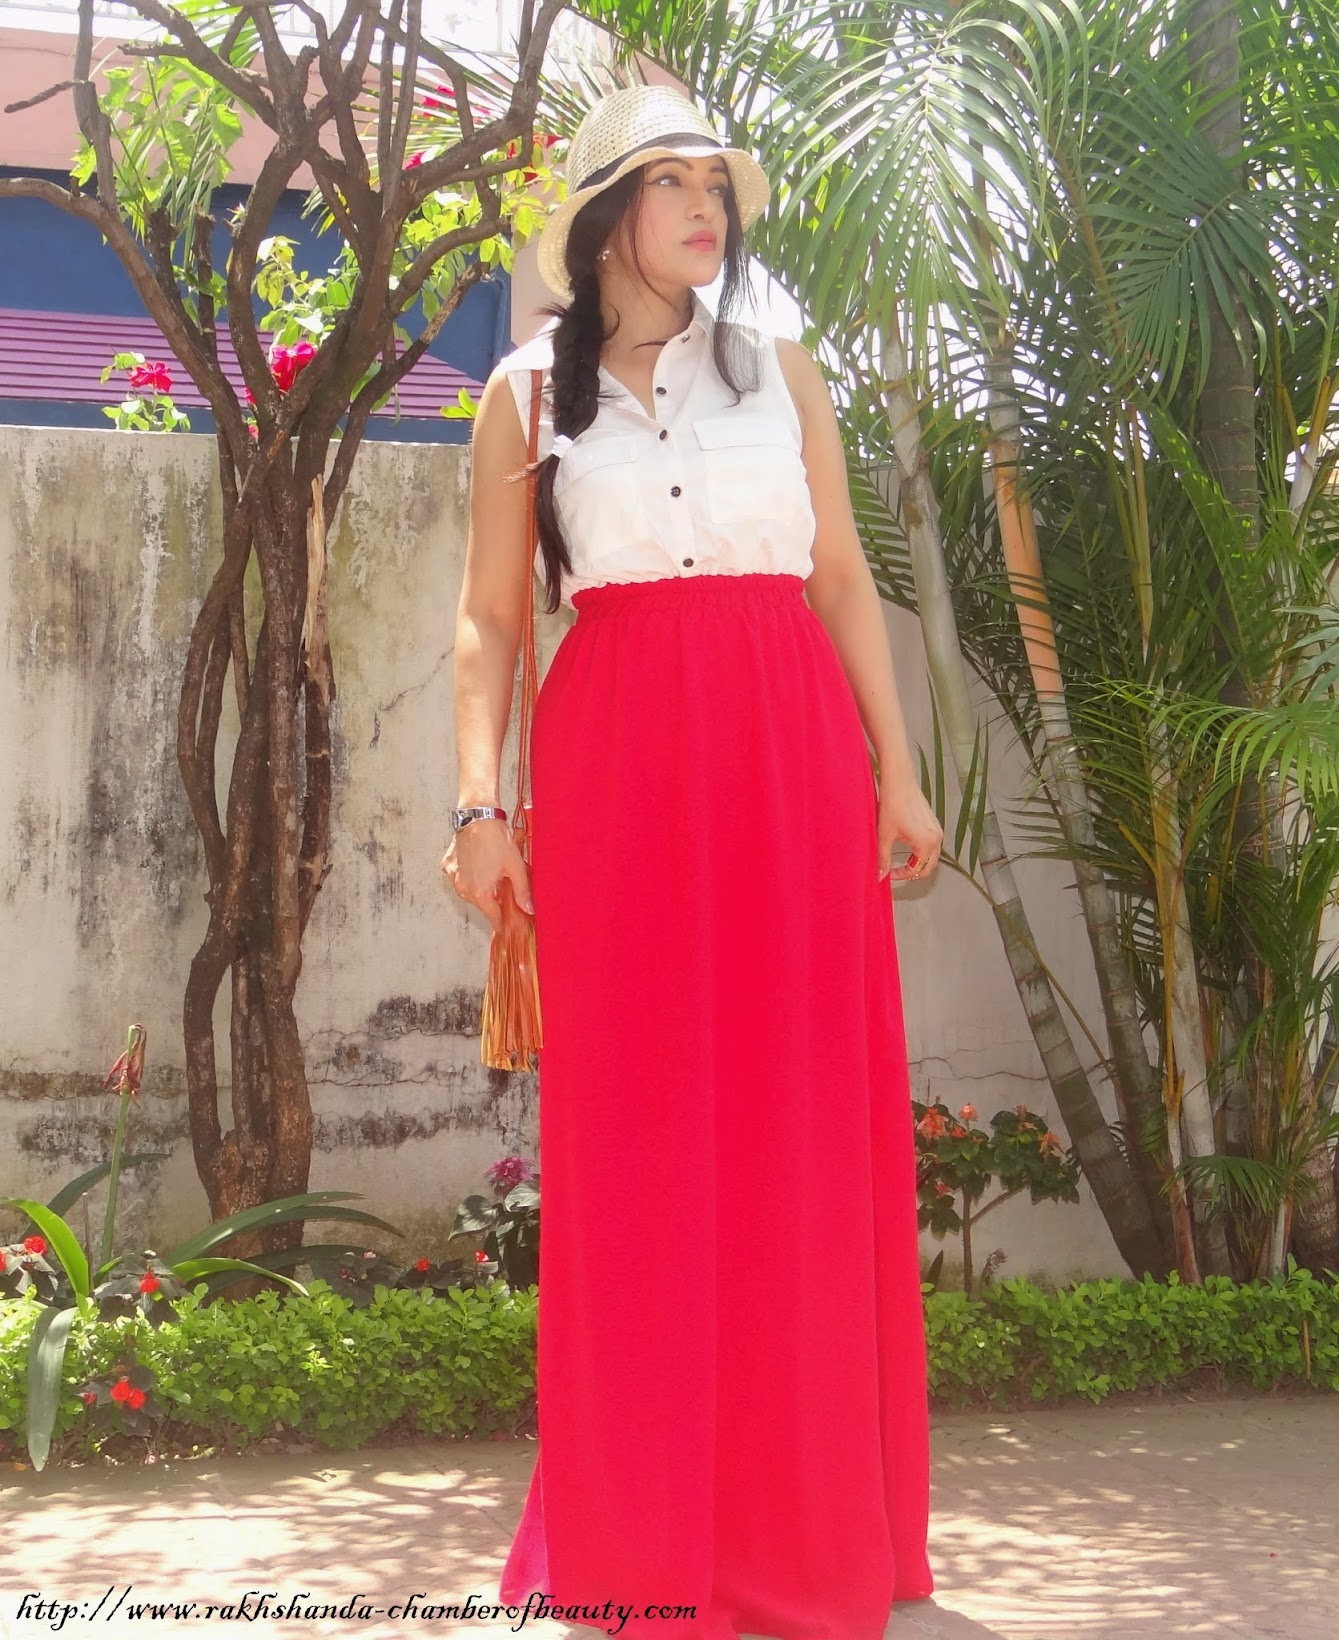 Red and White maxi dress-OOTD, Stalkbuylove.com, Chamber of Beauty